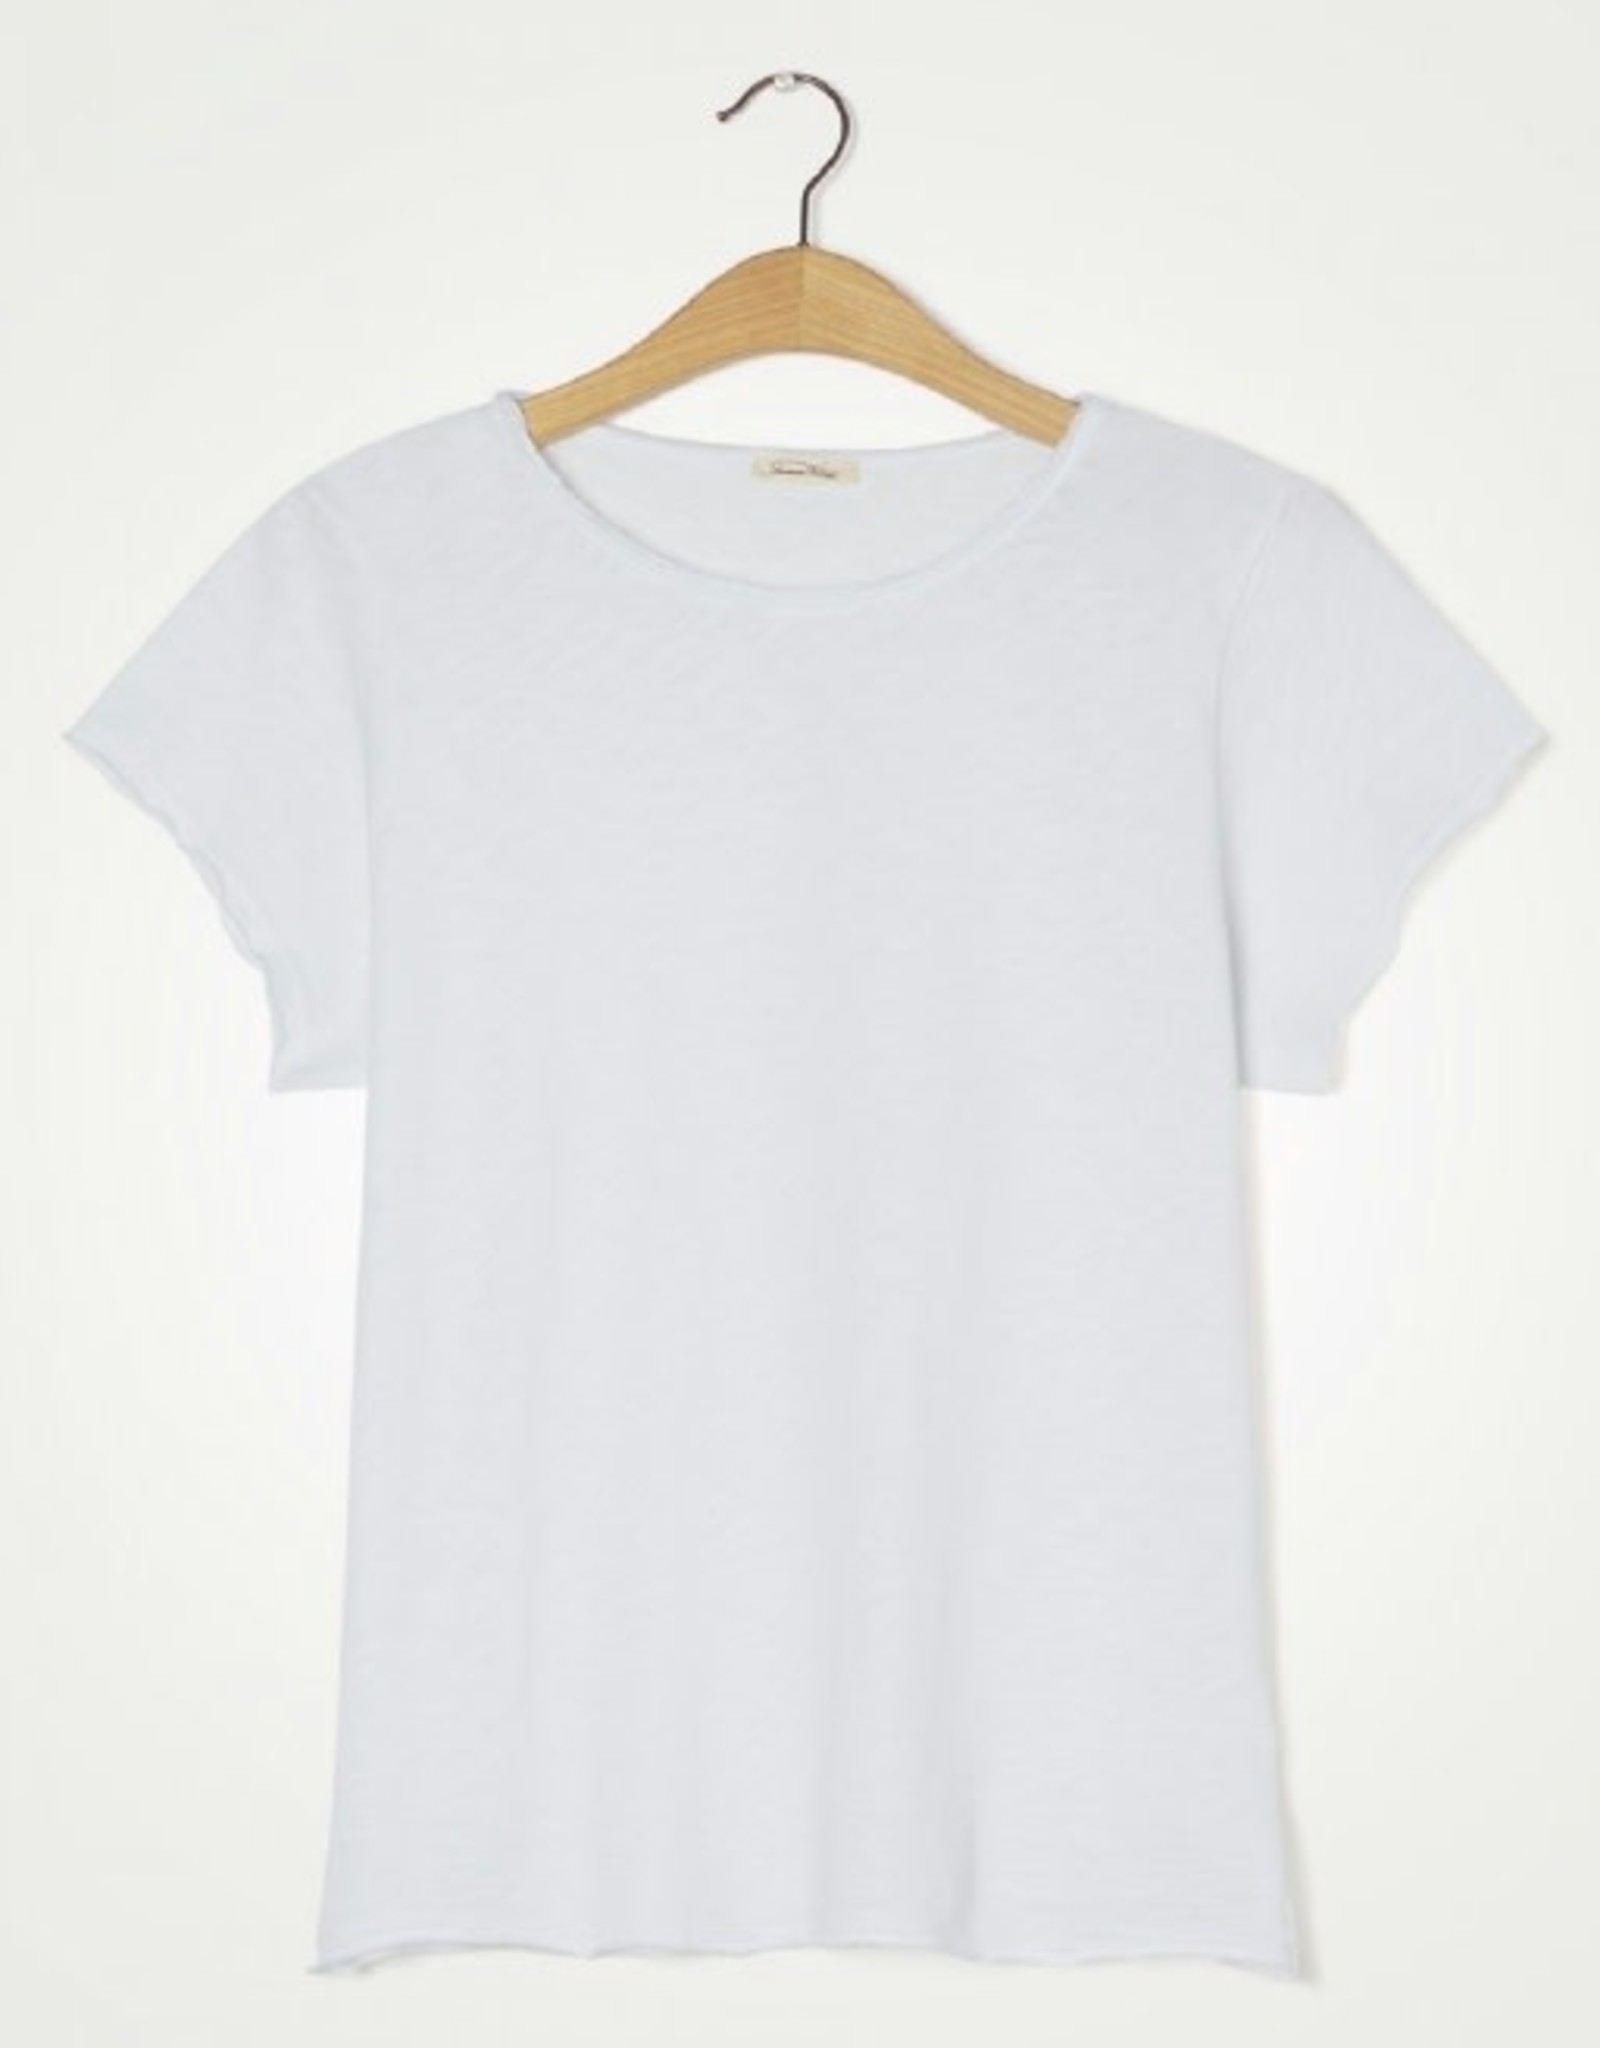 American Vintage T-shirt 'Sonoma' Boothals - Wit